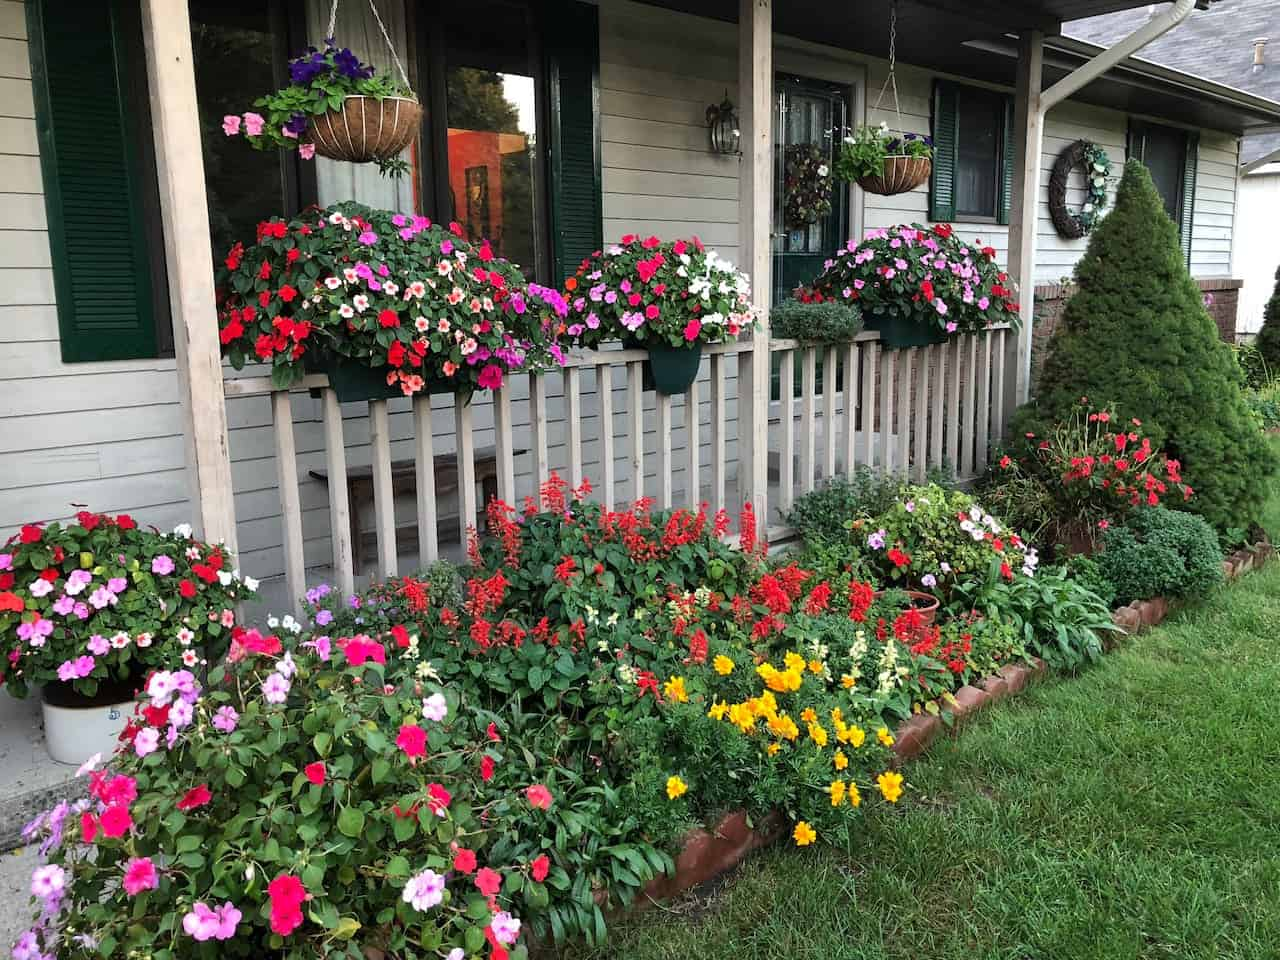 Image of Airbnb rental in Holland, Michigan